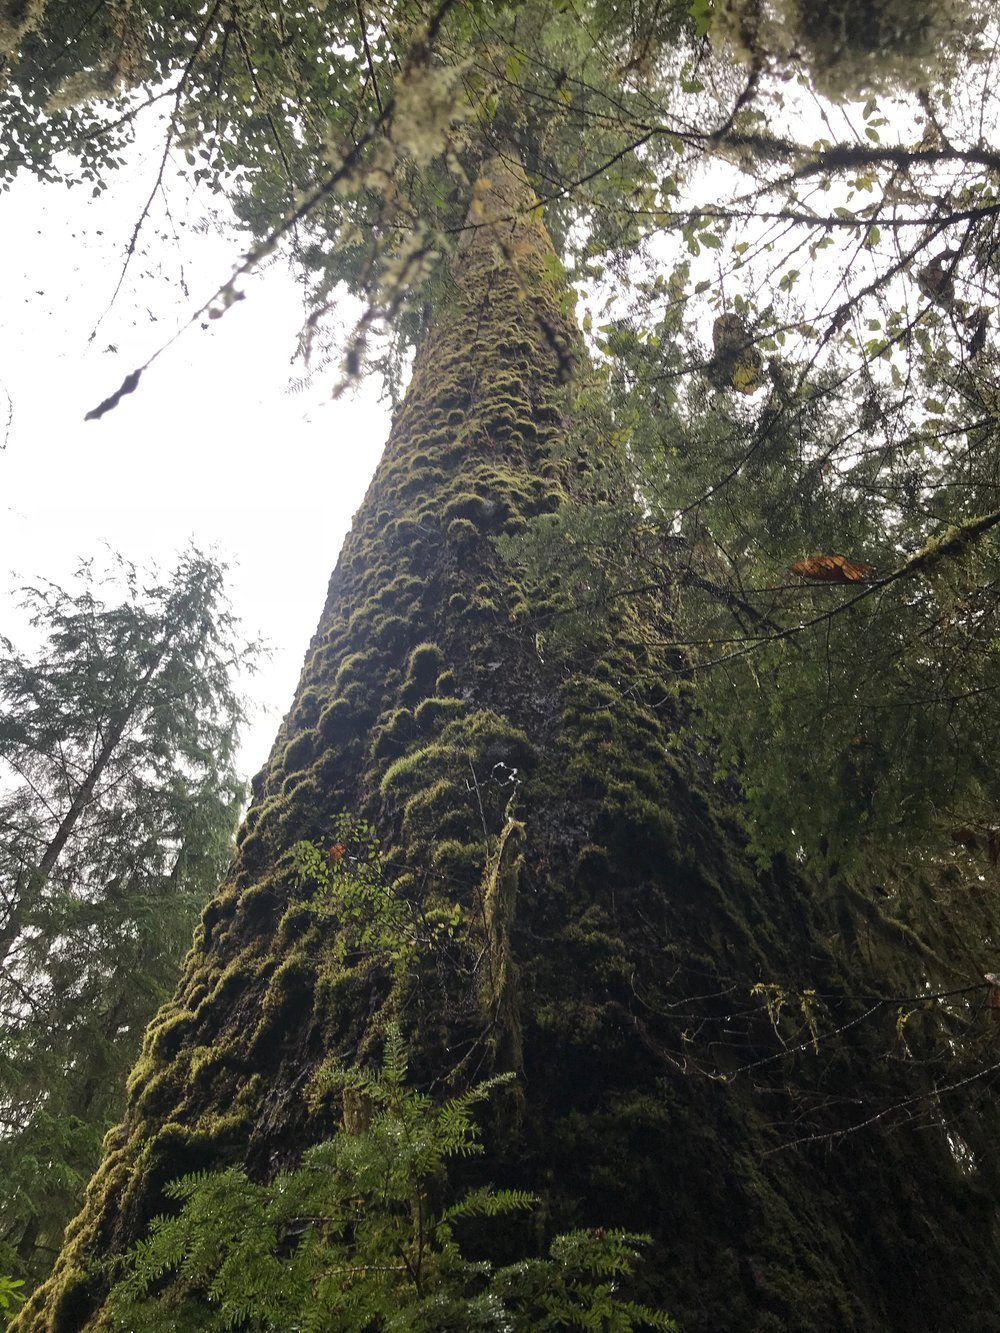 Another of the Olympic National Park's giants.